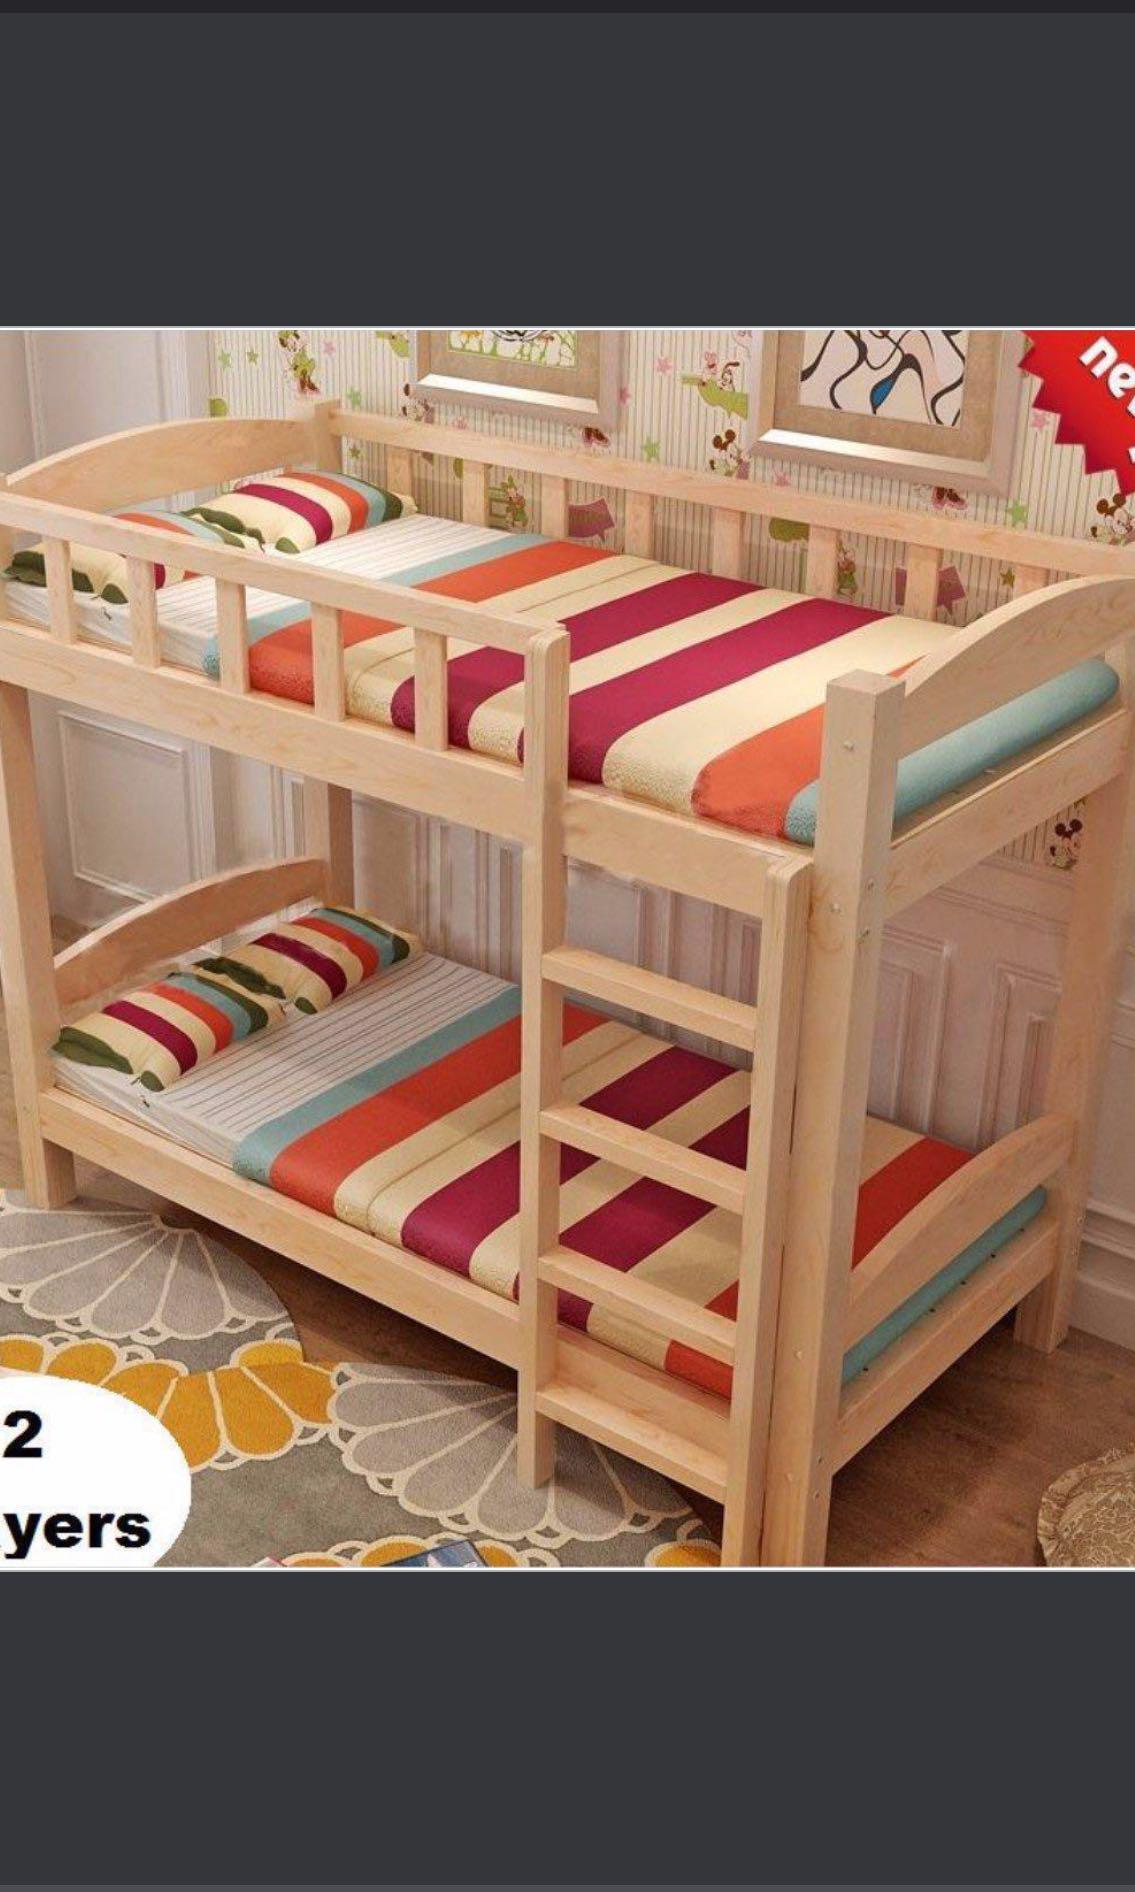 Preorder Bunk Bed Two Layers Bed Wooden Bed Frame Furniture Beds